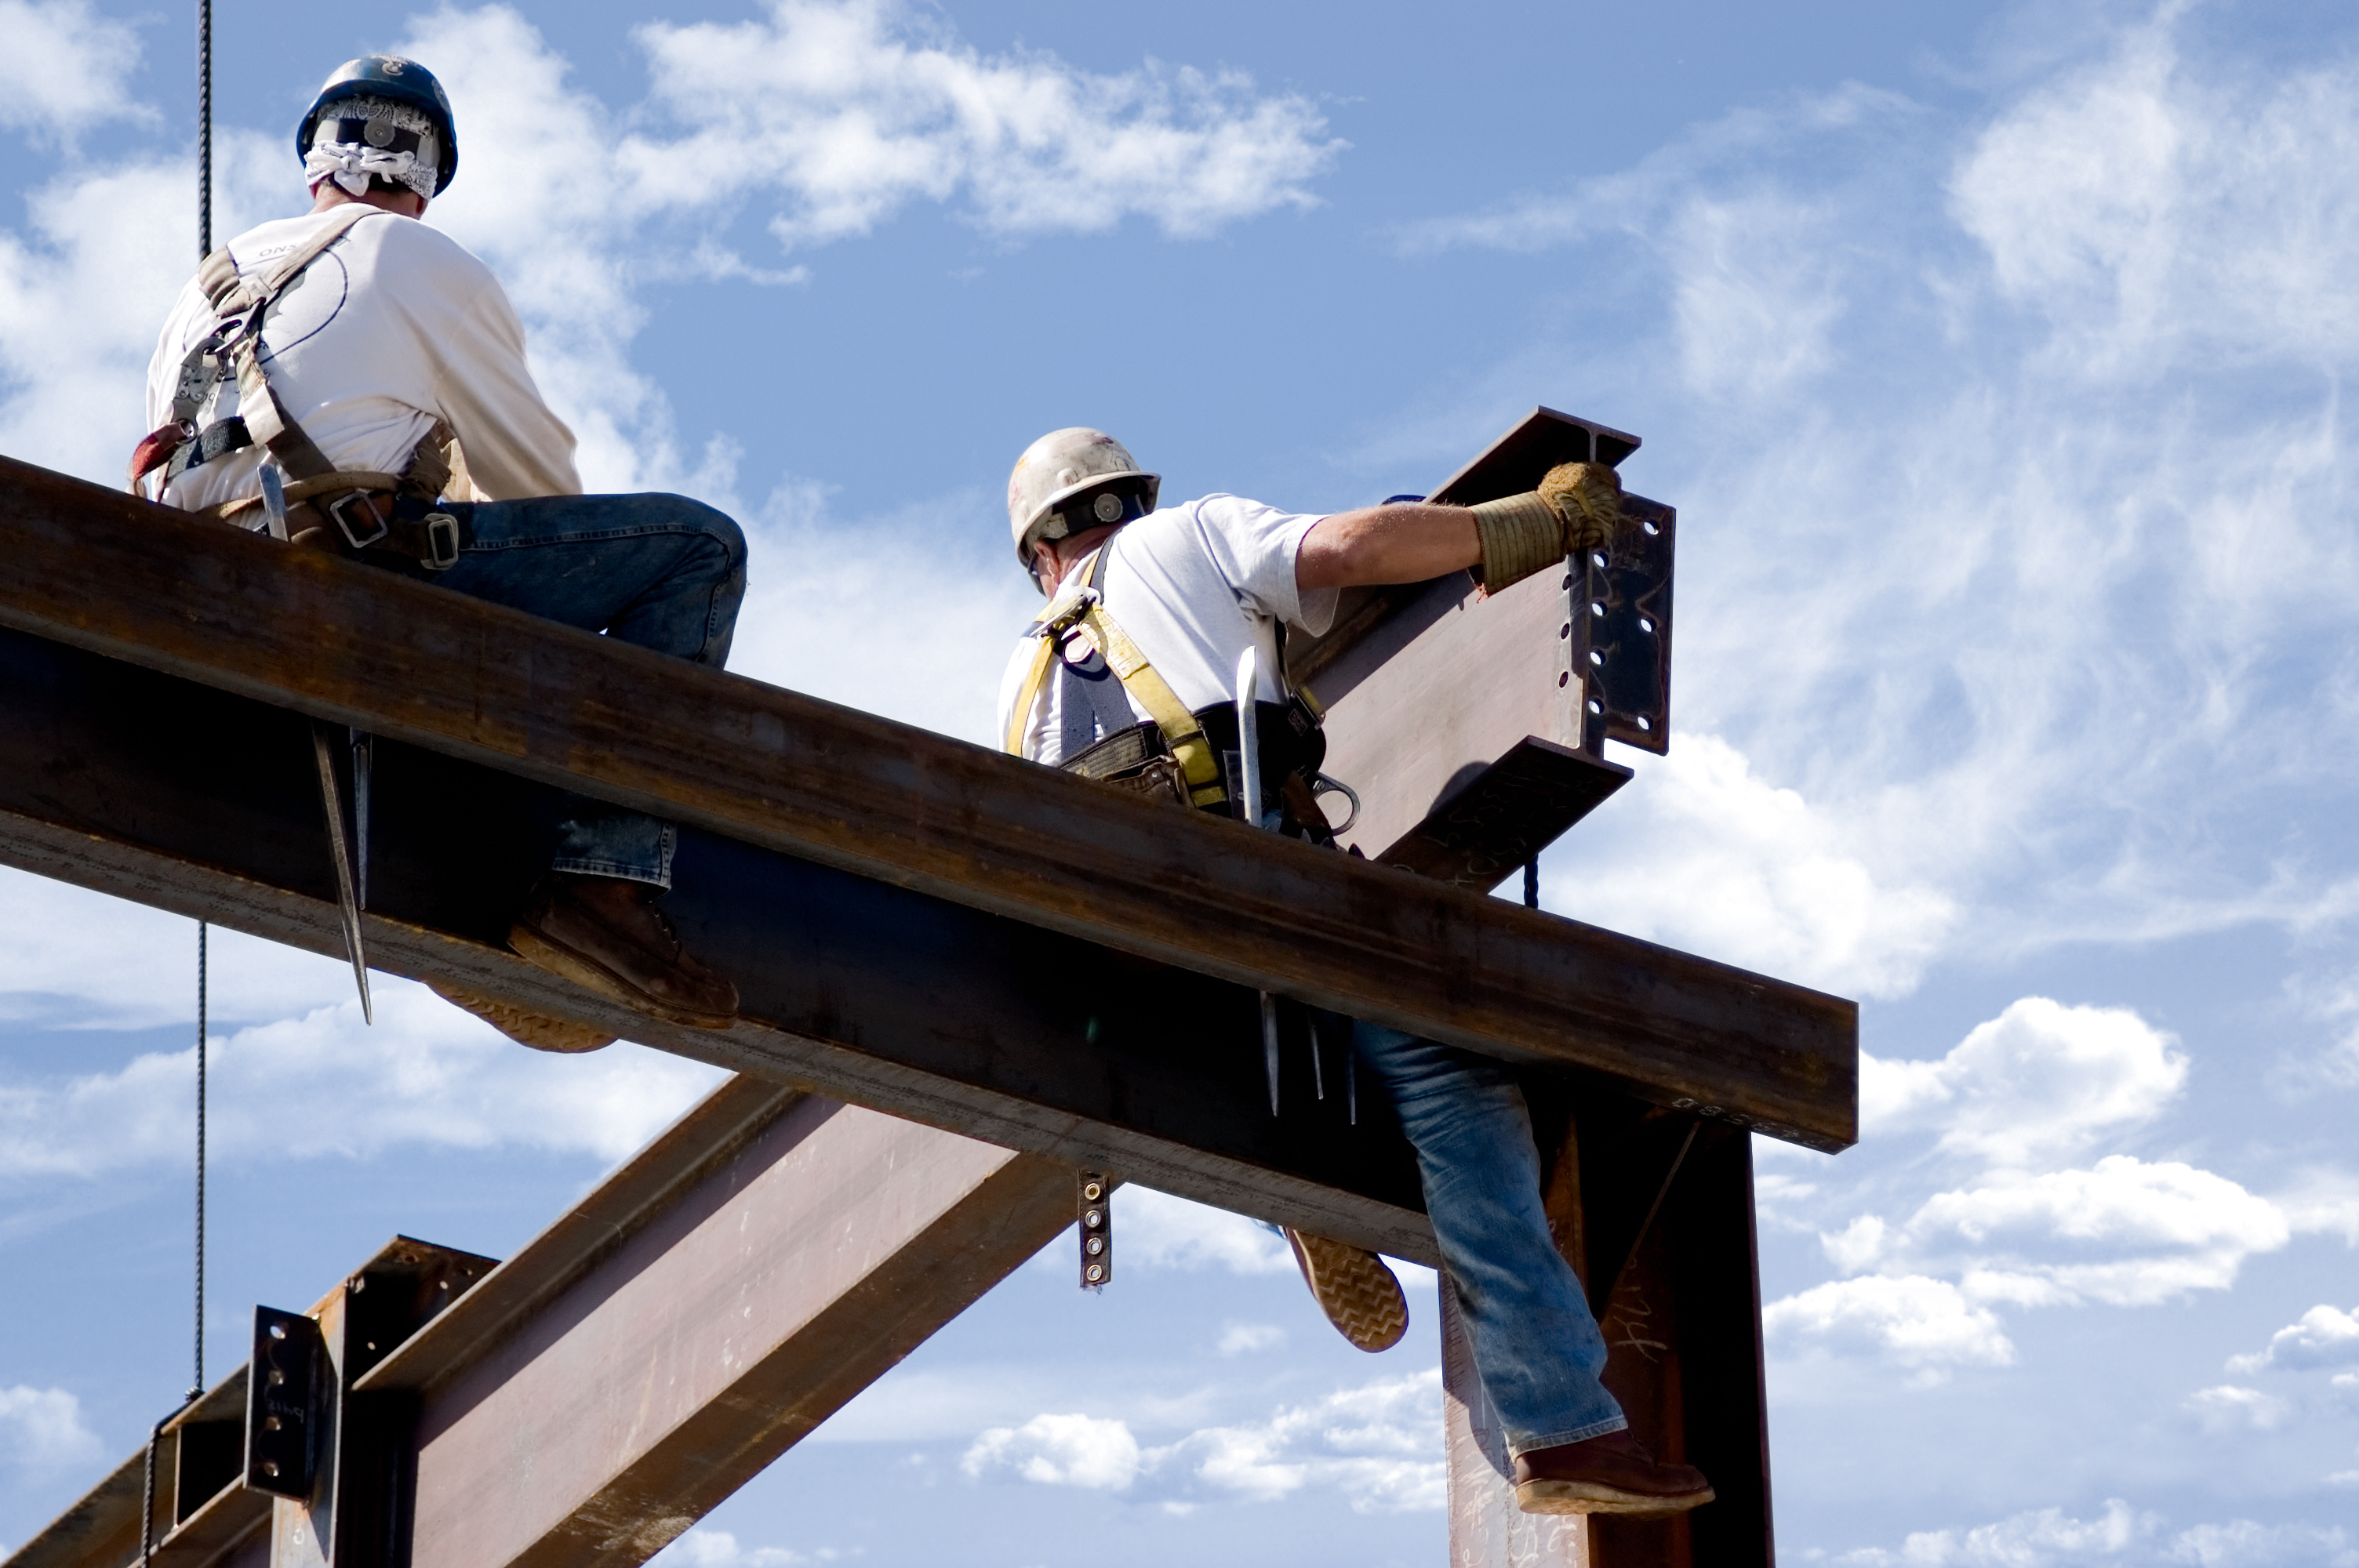 workers compensation injury settlement attorney - Workers